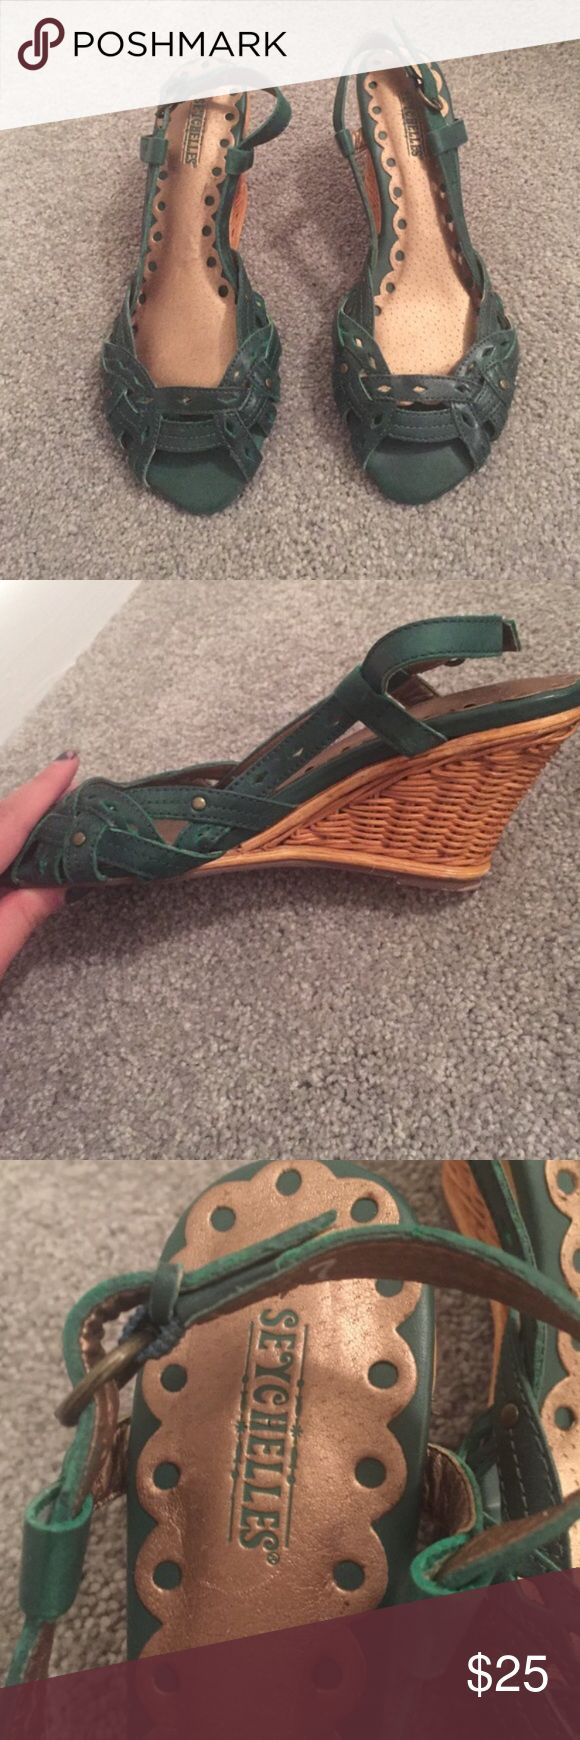 Seychelles wicker he'll green/turquoise shoe Supercuts and summery shoes! Seychelles Shoes Wedges